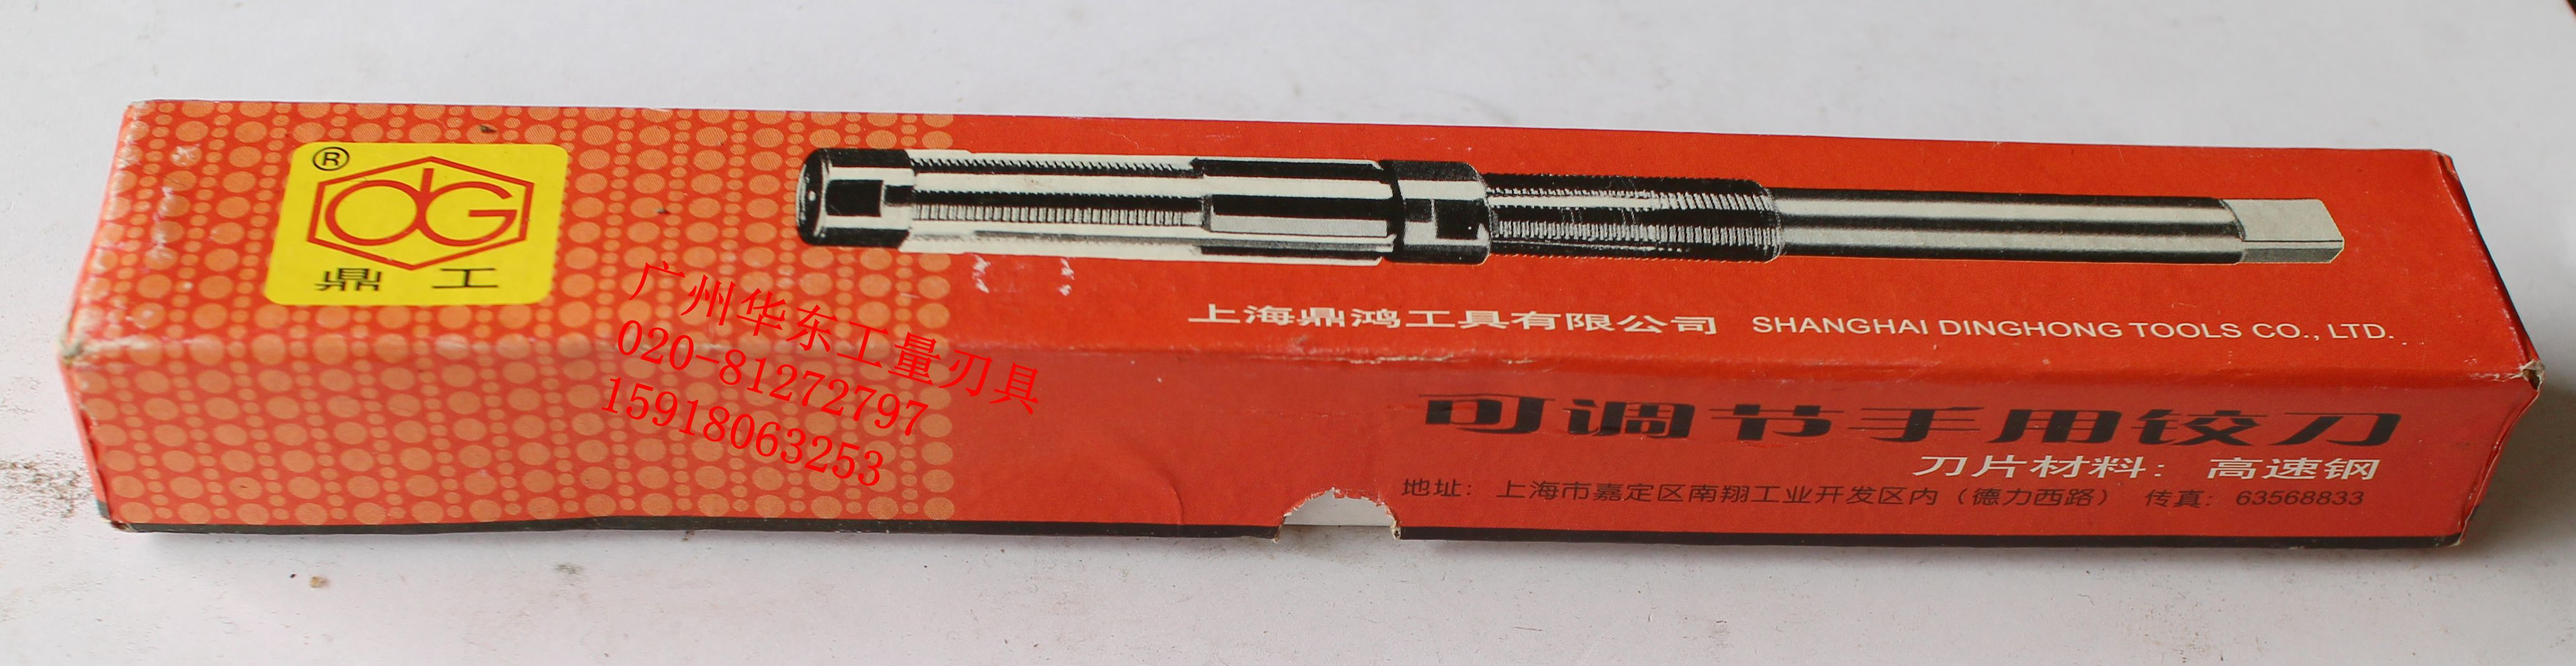 Supply adjustable reamer 17-1921-23 specifications by hand quality Ding Gong